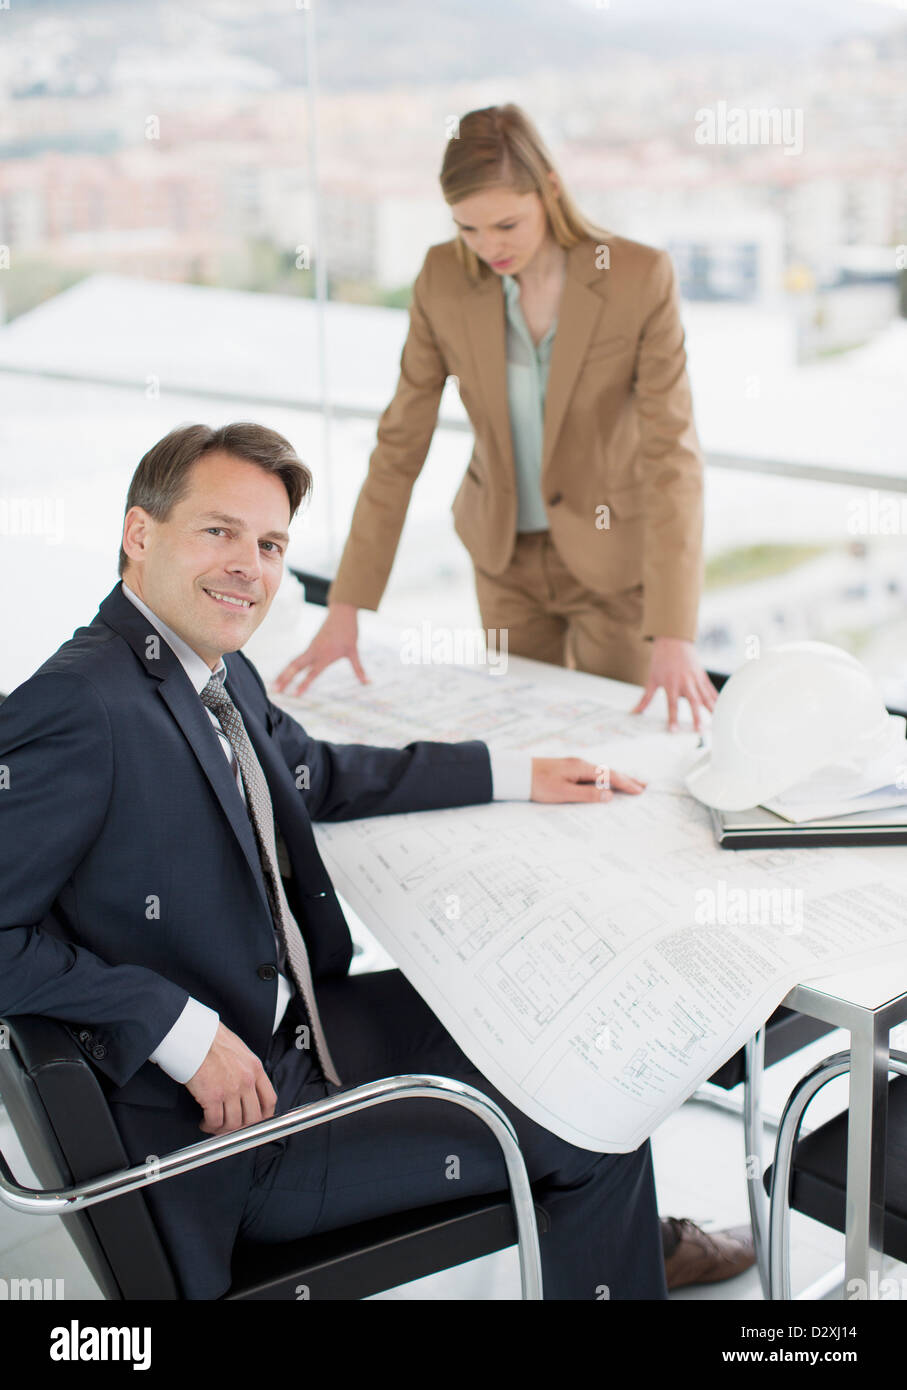 Portrait of confident architect reviewing blueprints with co-worker - Stock Image